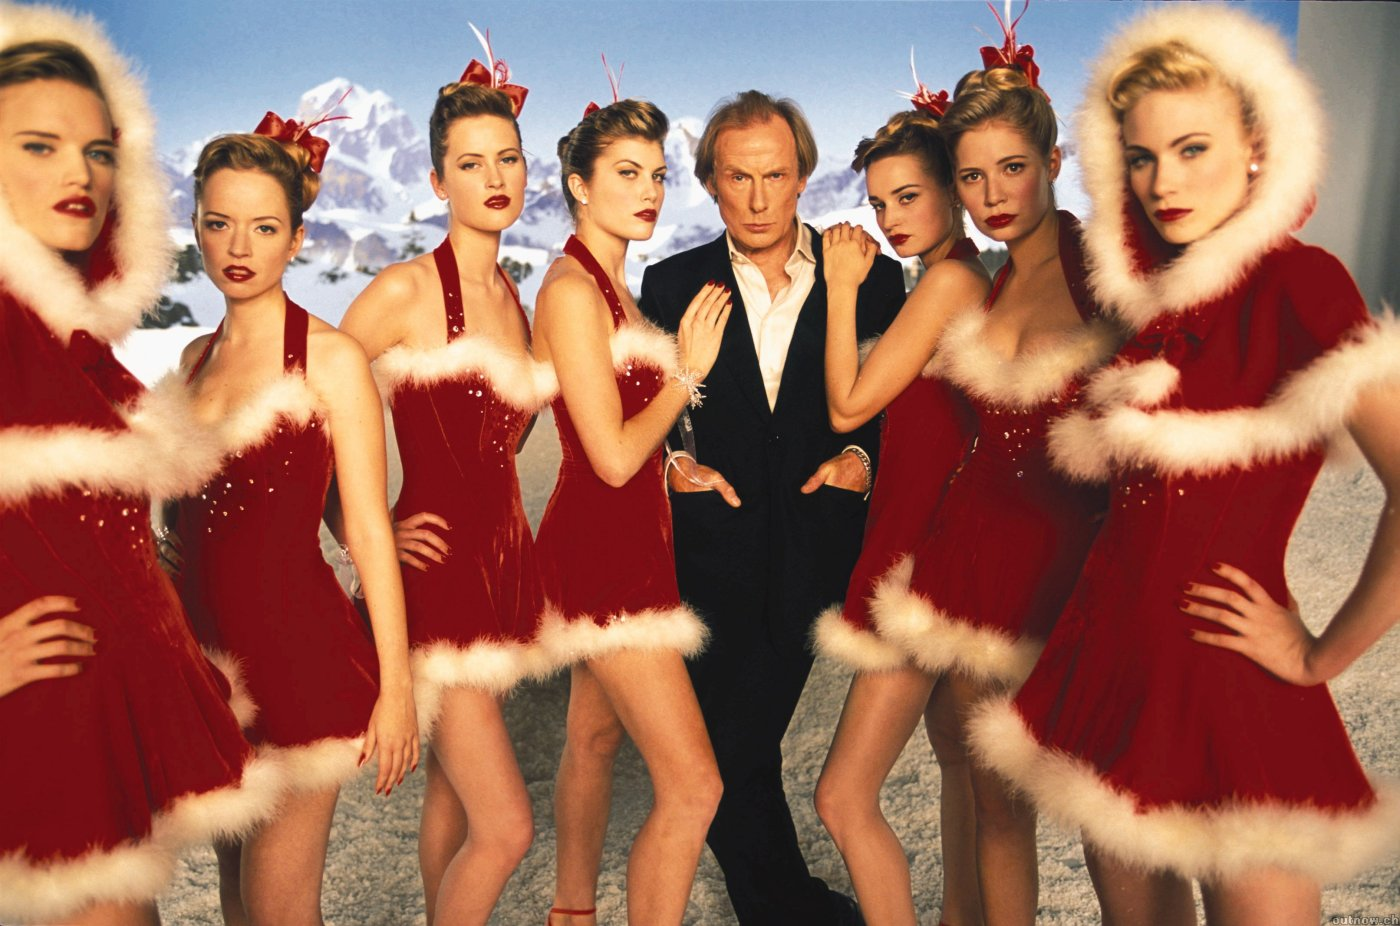 http://3.bp.blogspot.com/-9agoRDjJP2k/UNb8mRDFRGI/AAAAAAAAIuo/JZT4dBrfYq8/s1600/love_actually_movie_image_bill_nighy_01.jpg